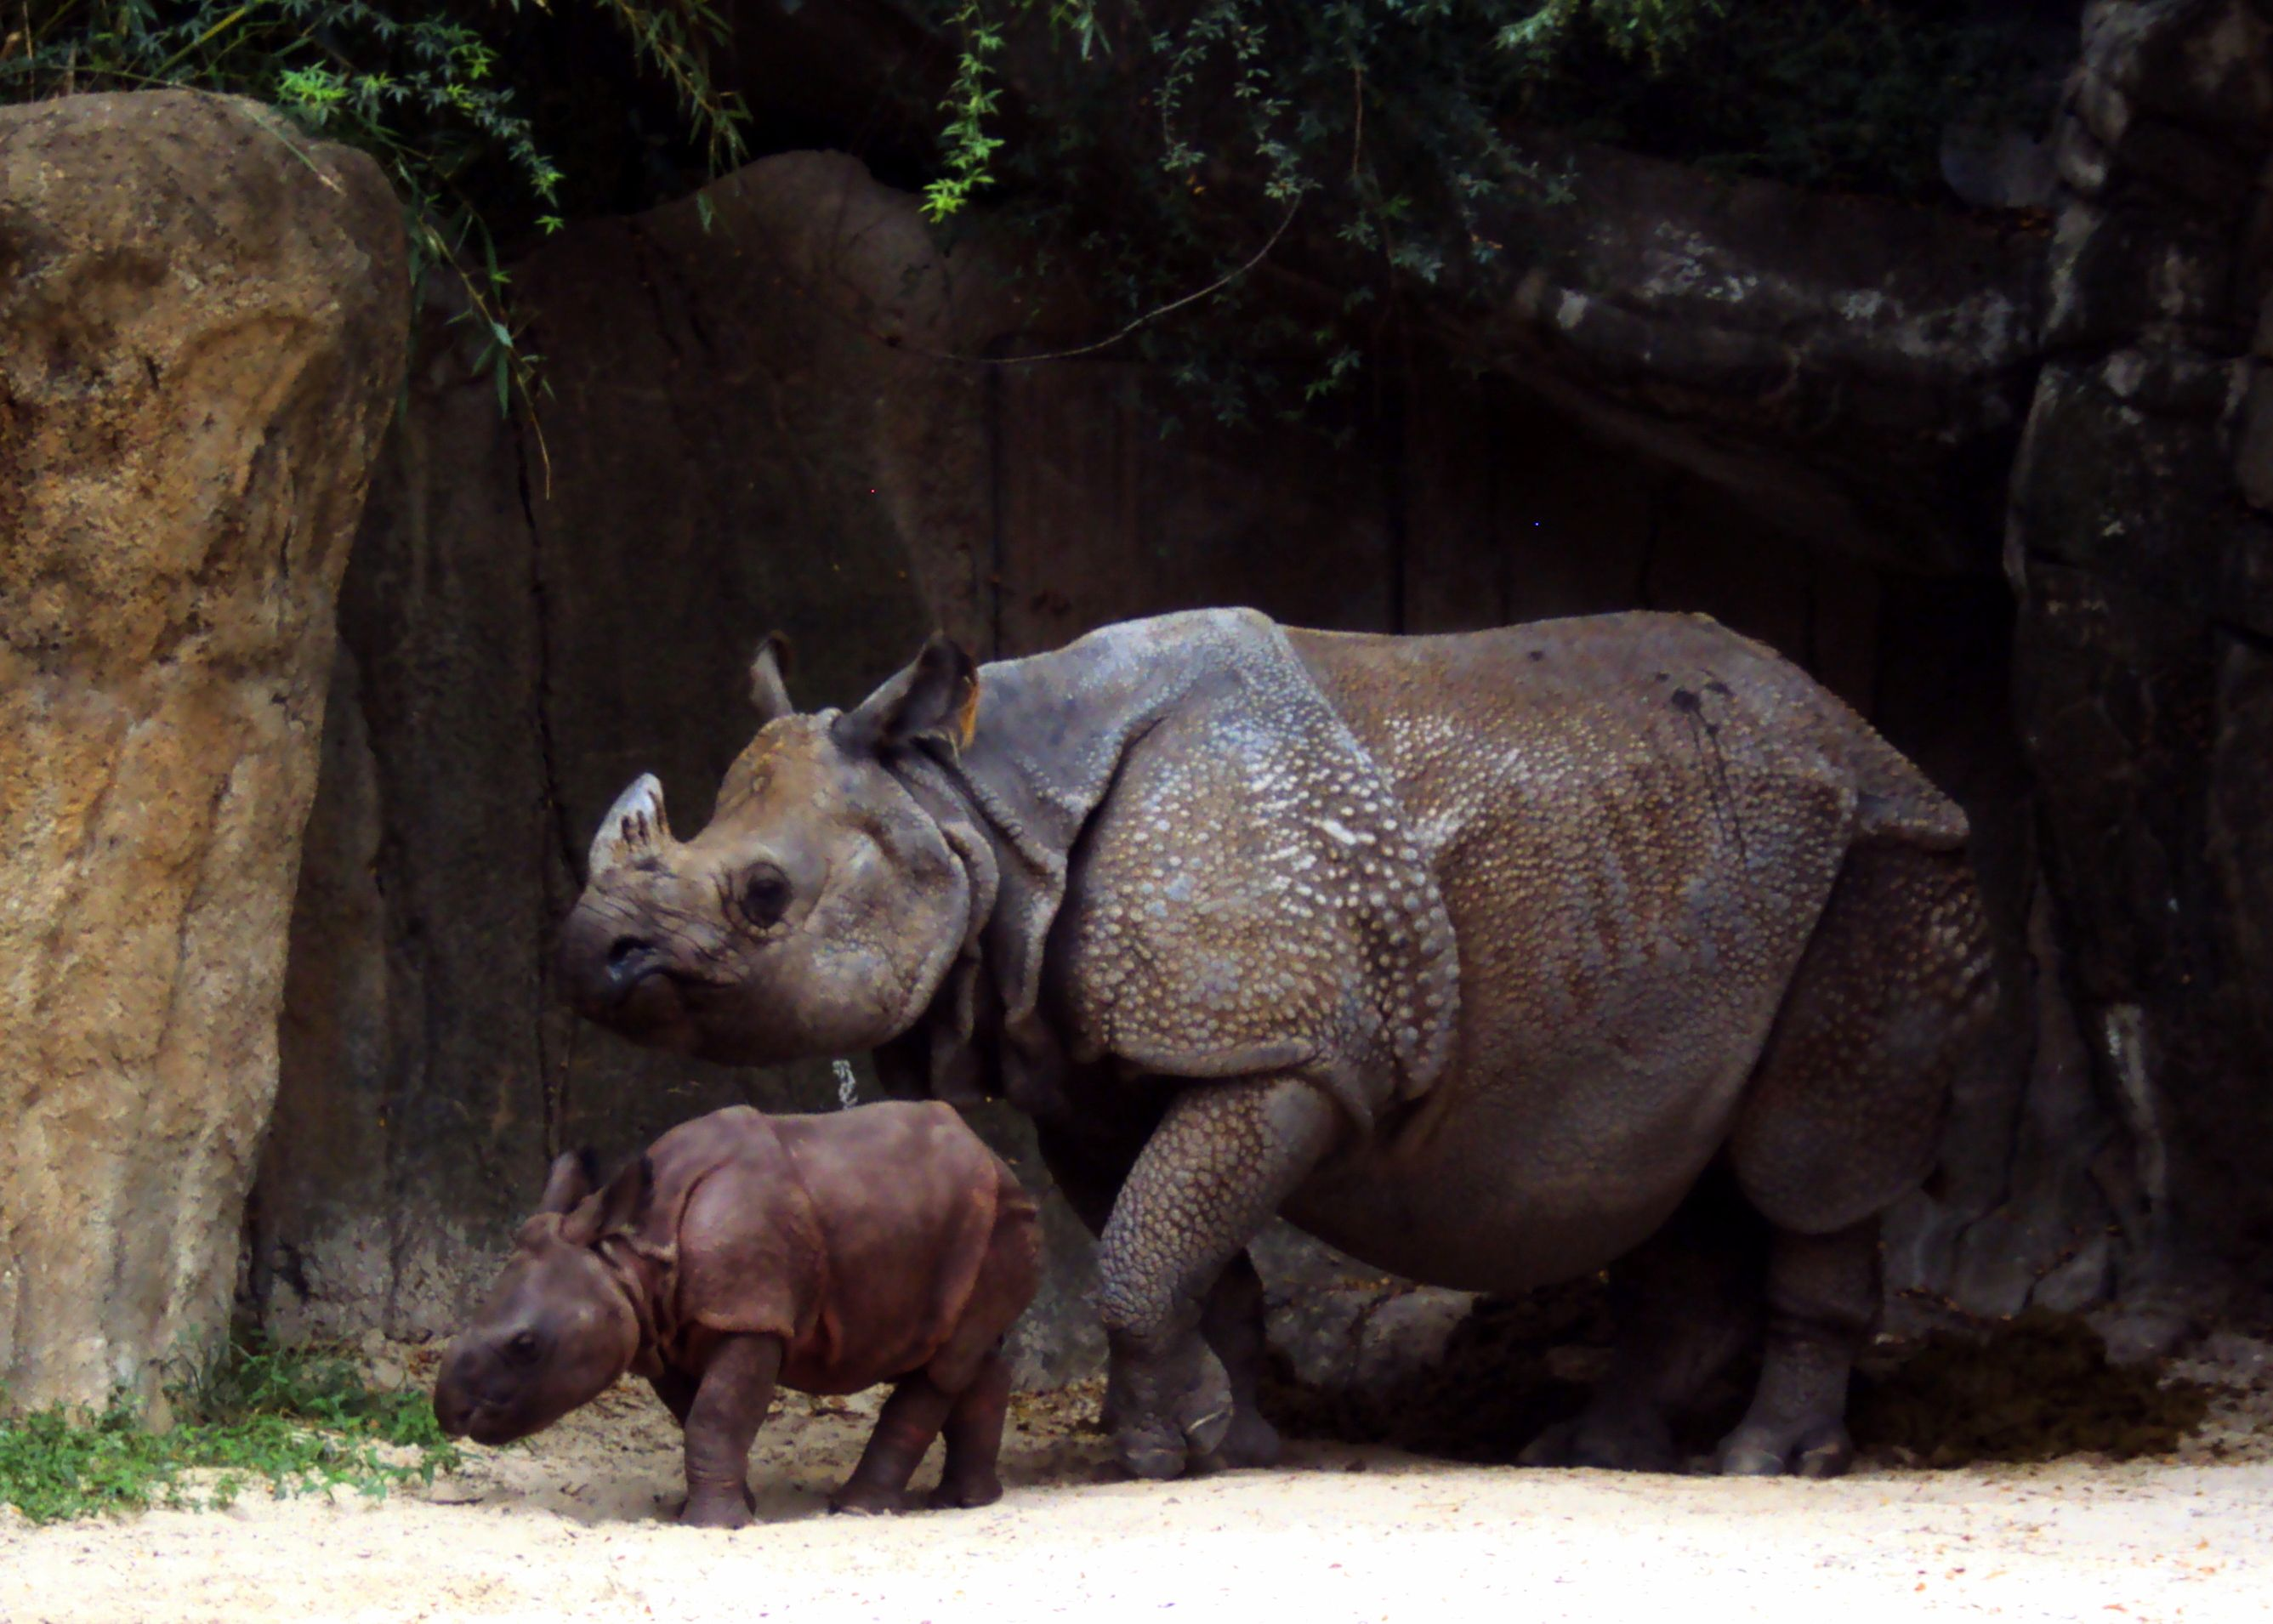 Fort Worth Zoo The Best Zoo in Texas Fort worth zoo